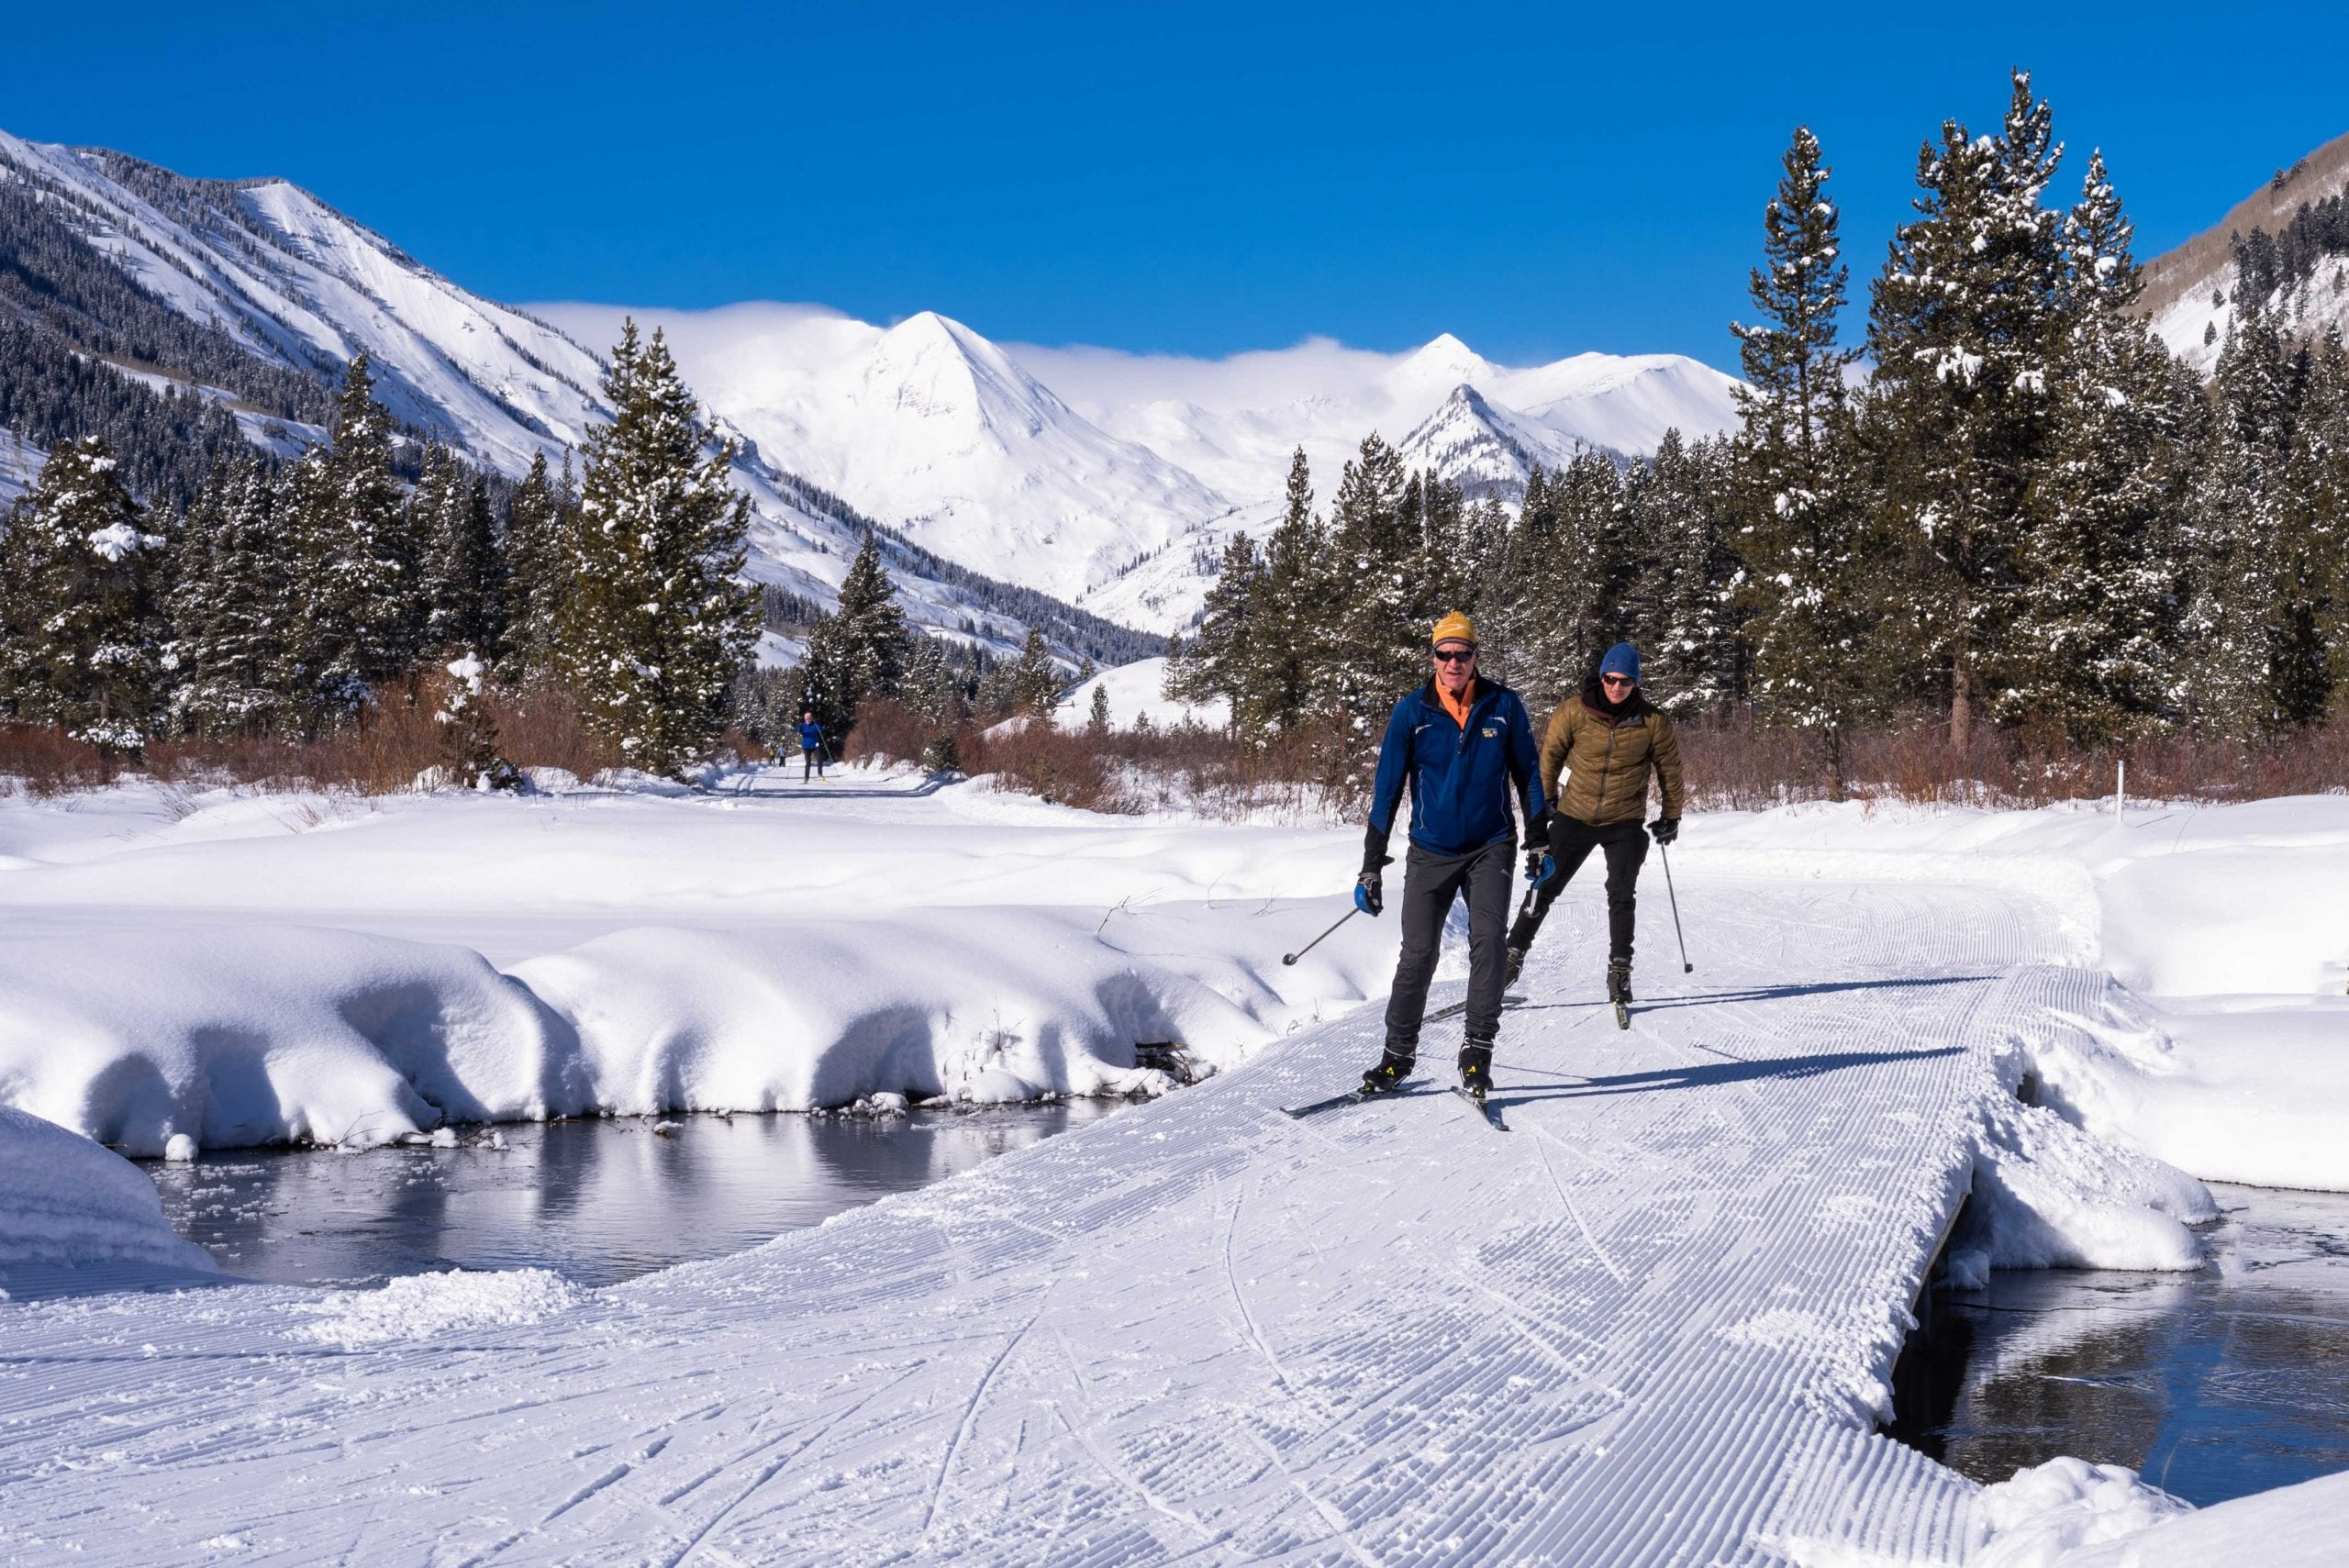 Skate skiers crossing a bridge over Slate River on Mike's Mile